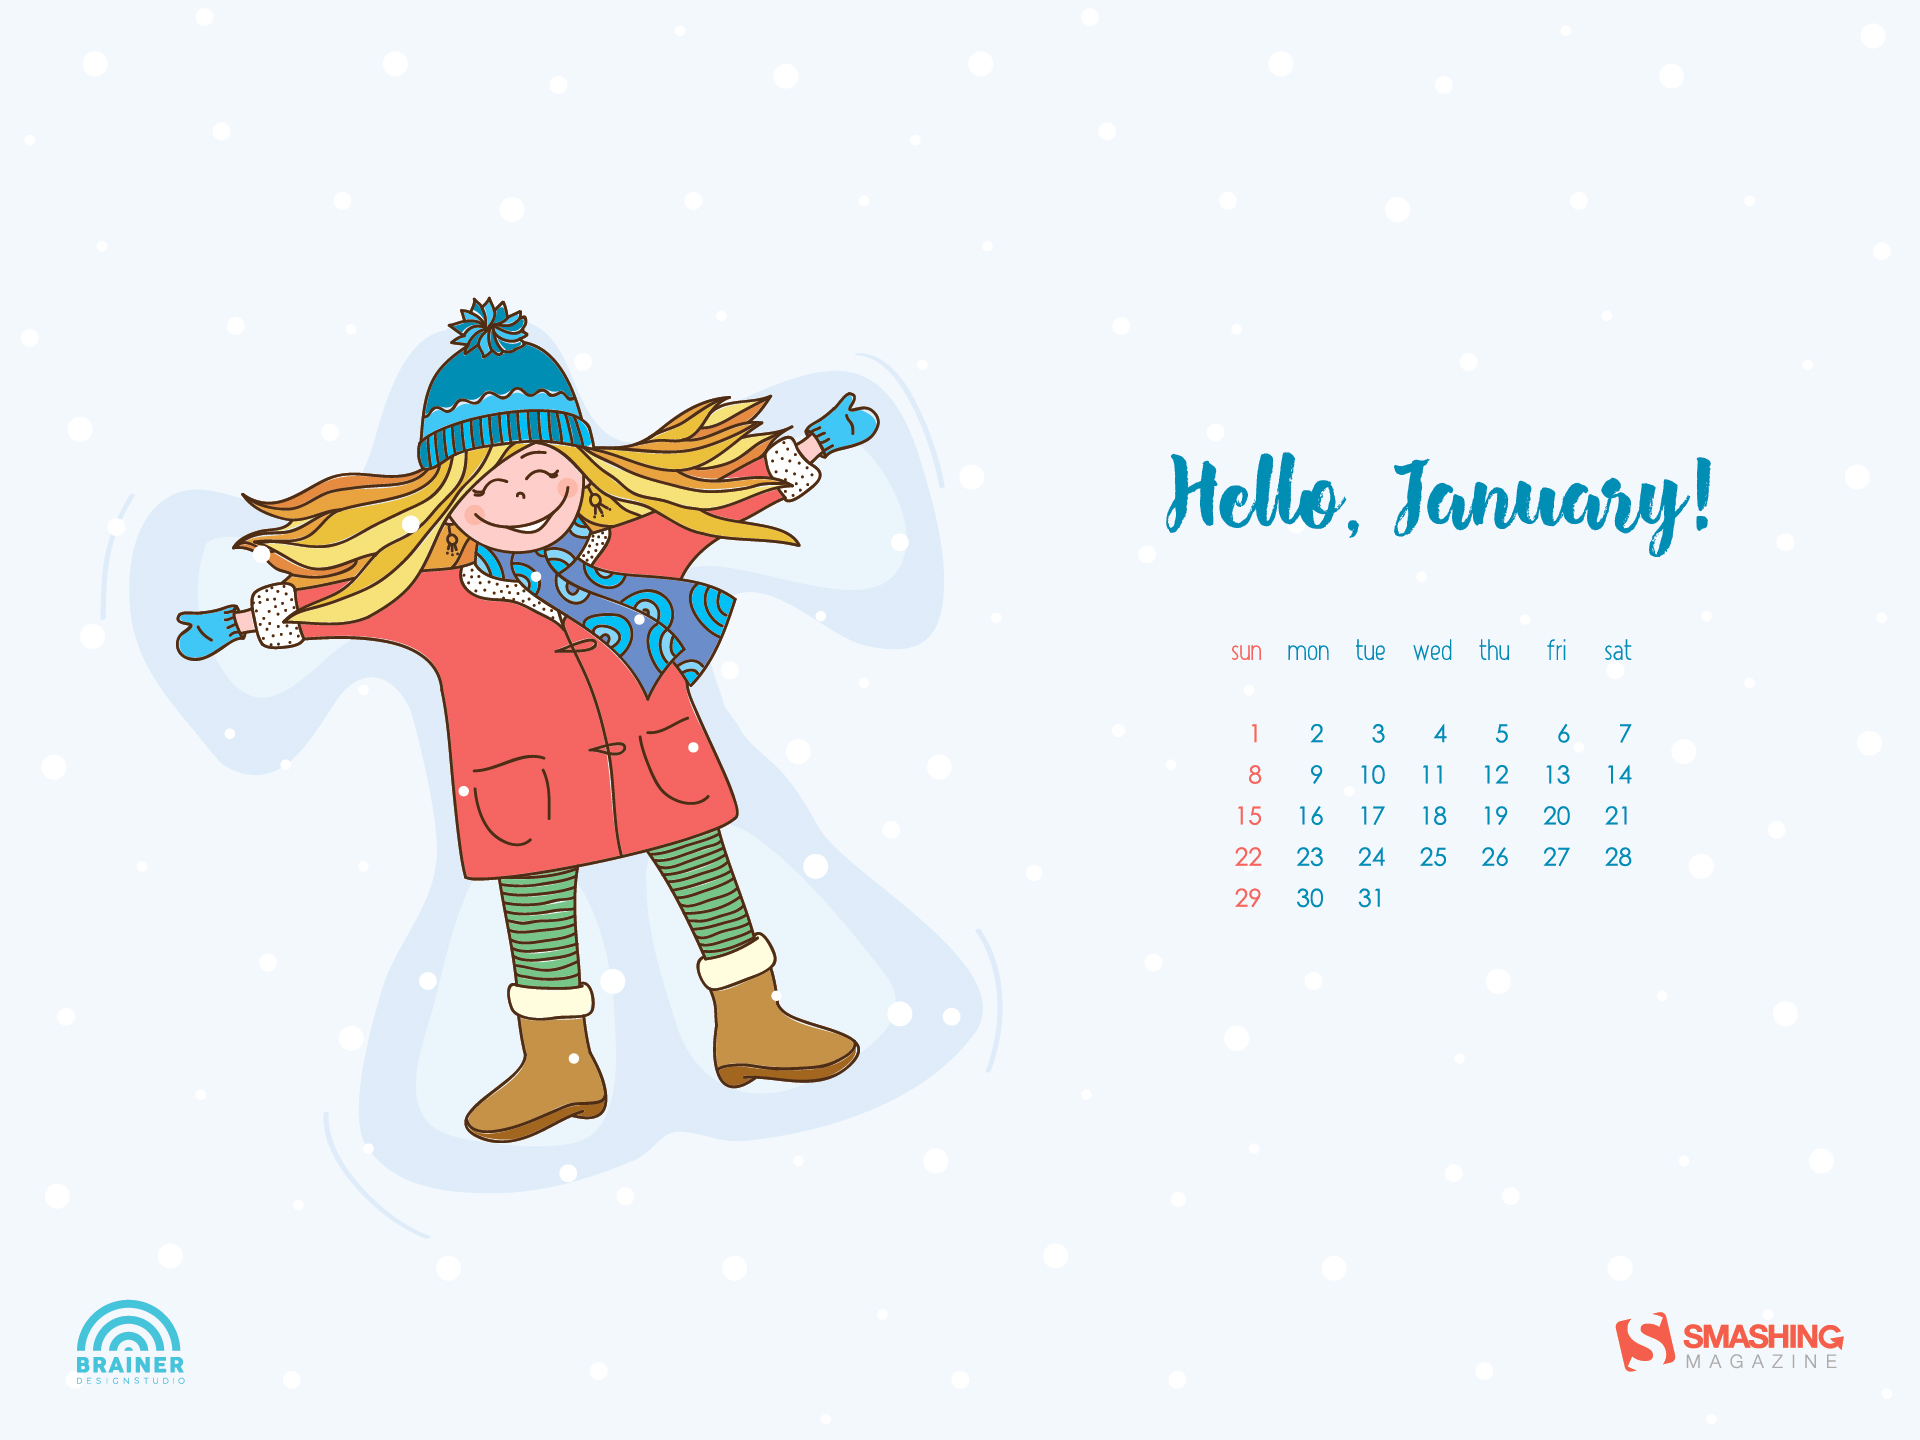 Desktop Wallpaper Calendars January 2017 — Smashing Magazine